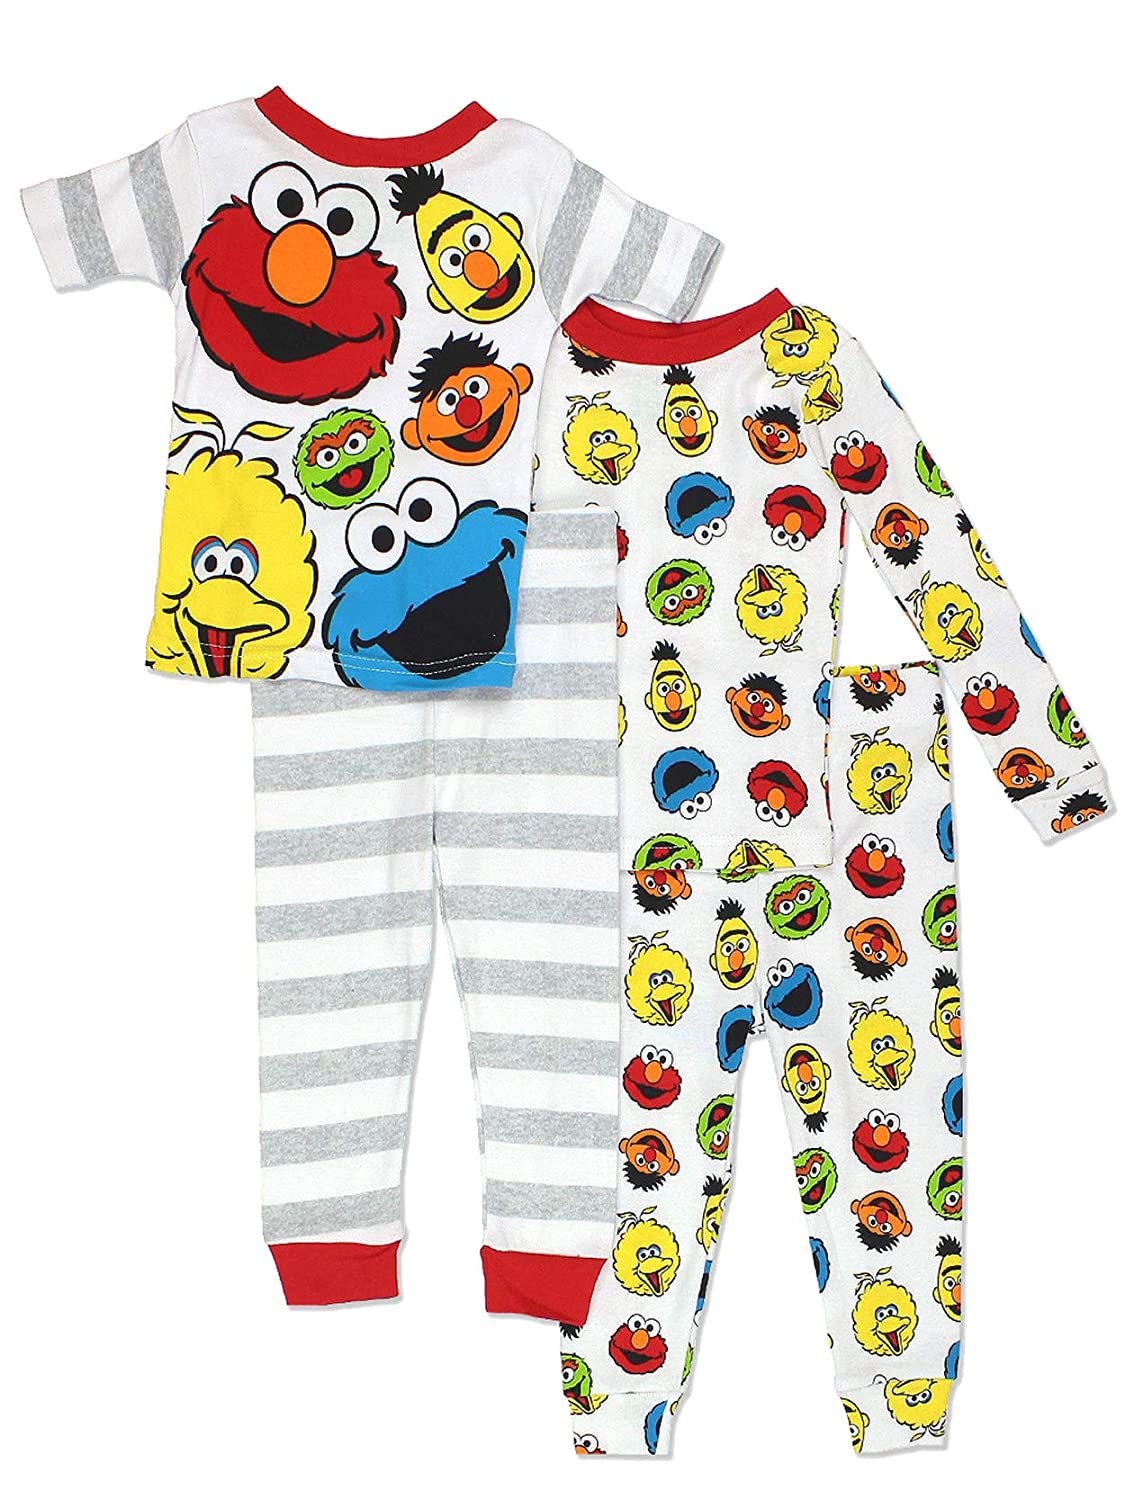 Sesame Street Gang Elmo Boys Girls 4 Piece Cotton Pajamas Set (Baby/Toddler) manufacturer